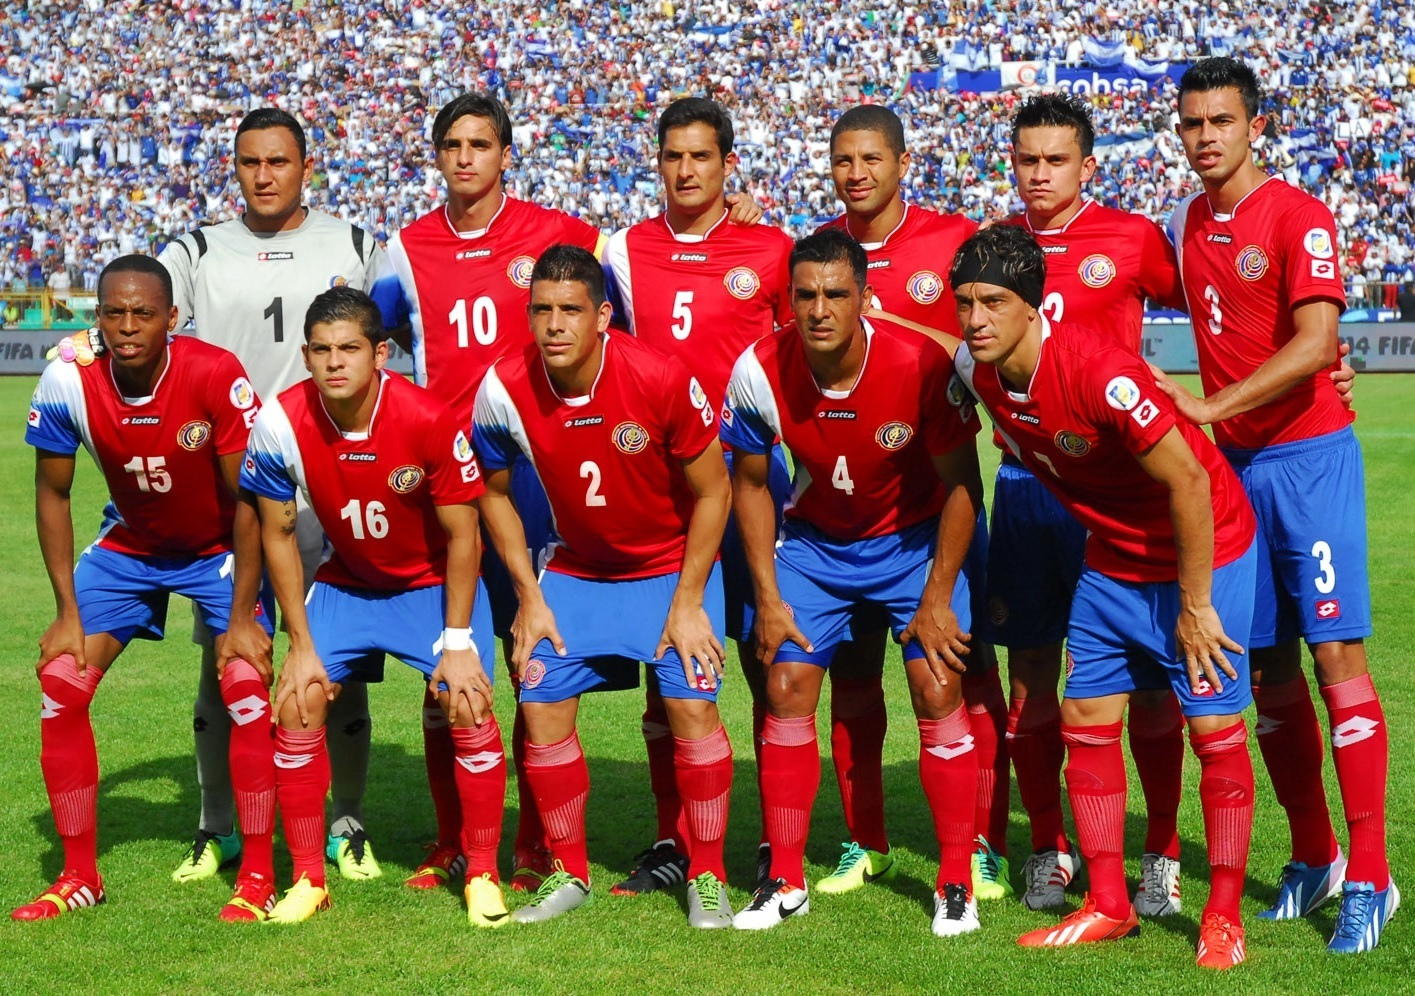 Costa-Rica-12-13-lotto-home-kit-starting-11.jpg